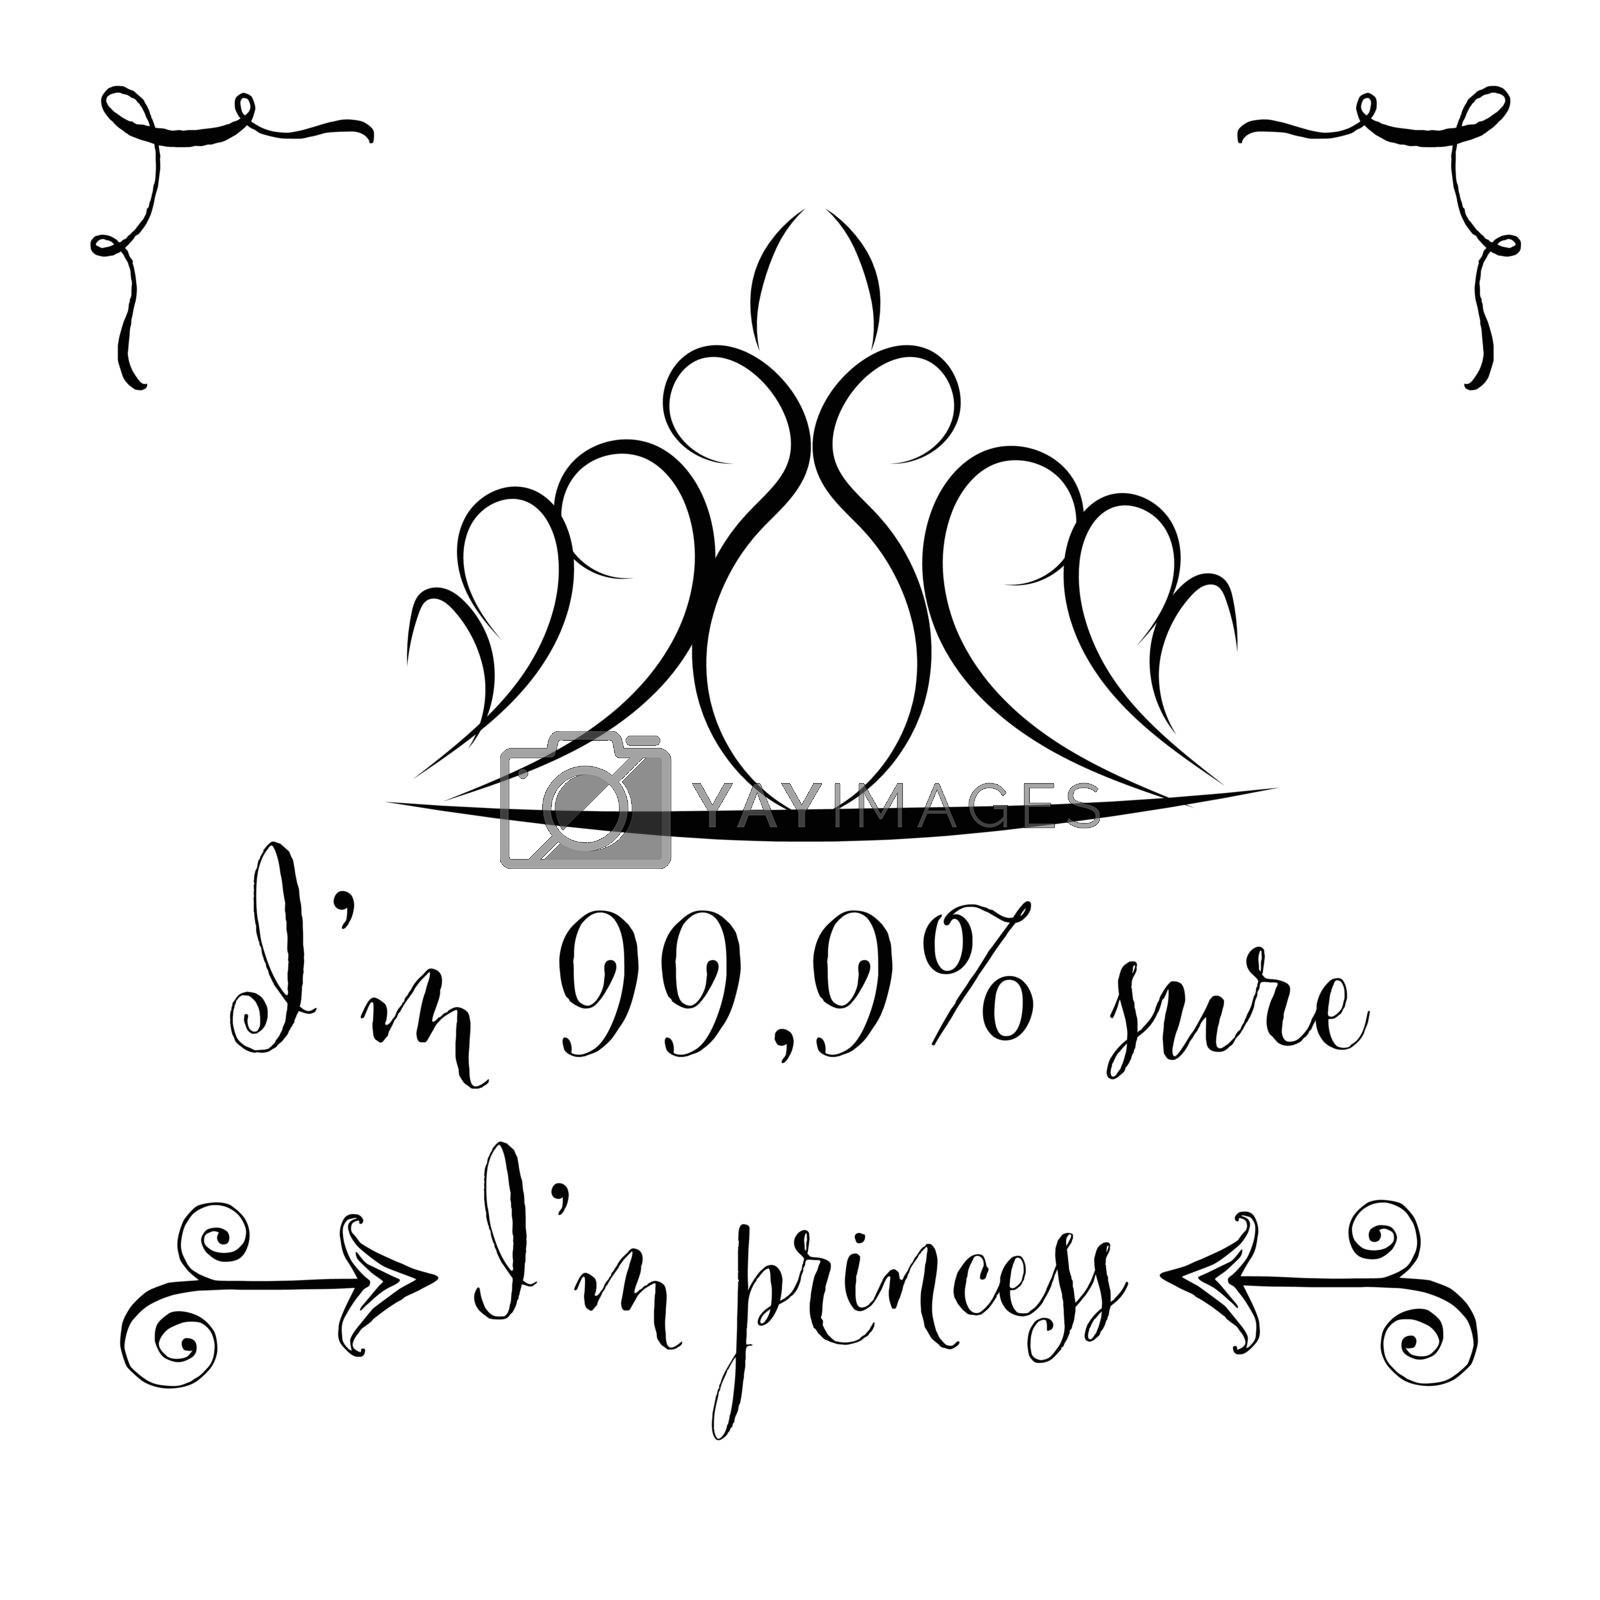 Hand drawn typography vector poster with creative slogan: I'm 99.9% sure I'm princess